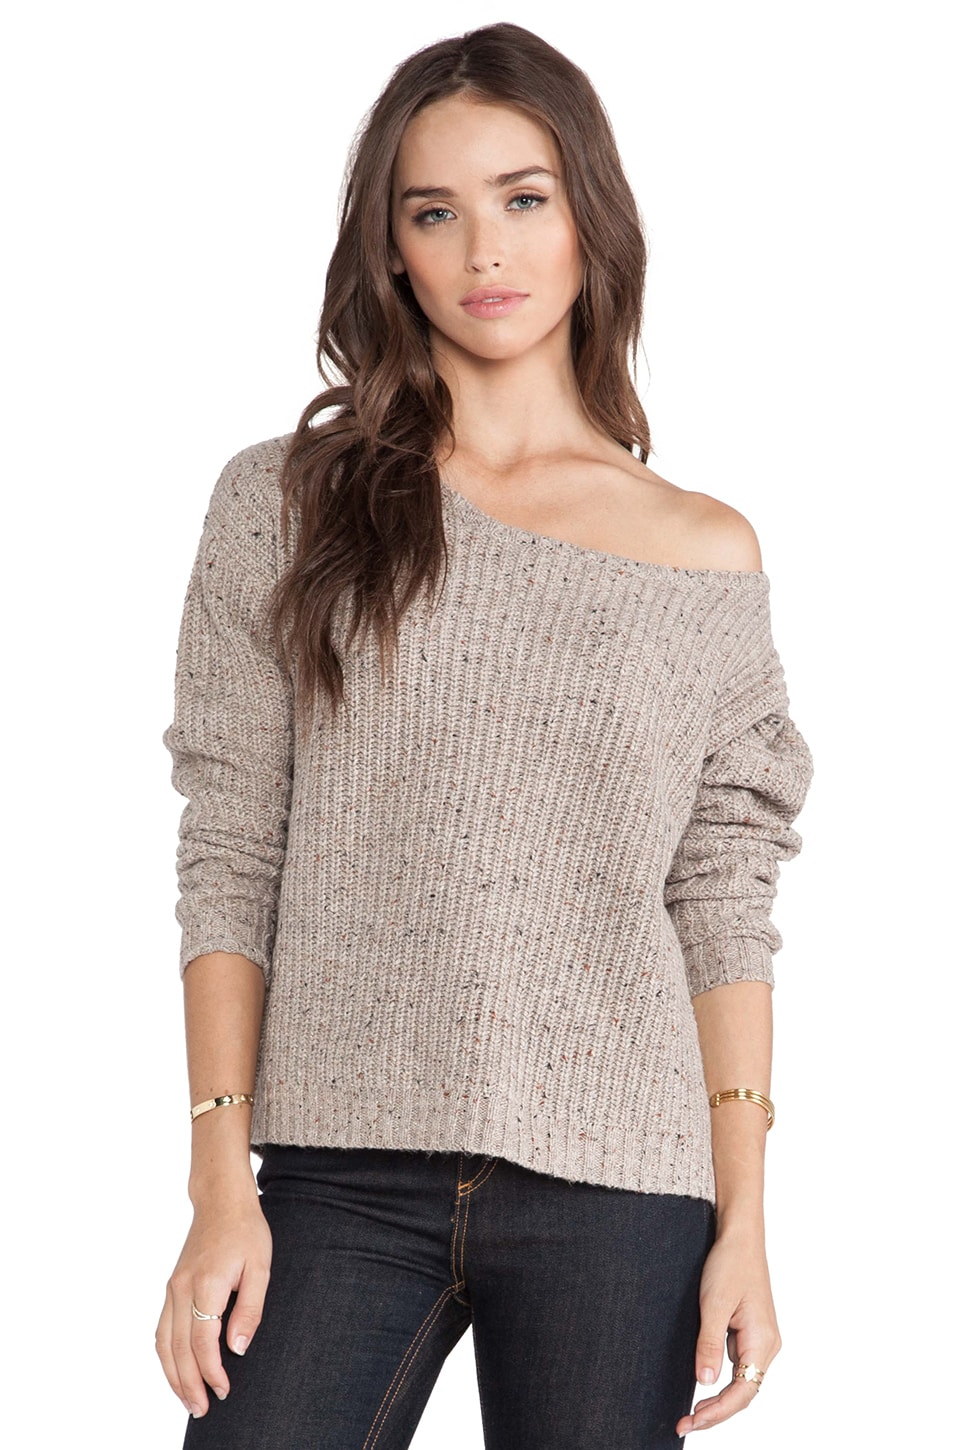 Soft Joie Amaryllis Sweater in Dark Heather Camel